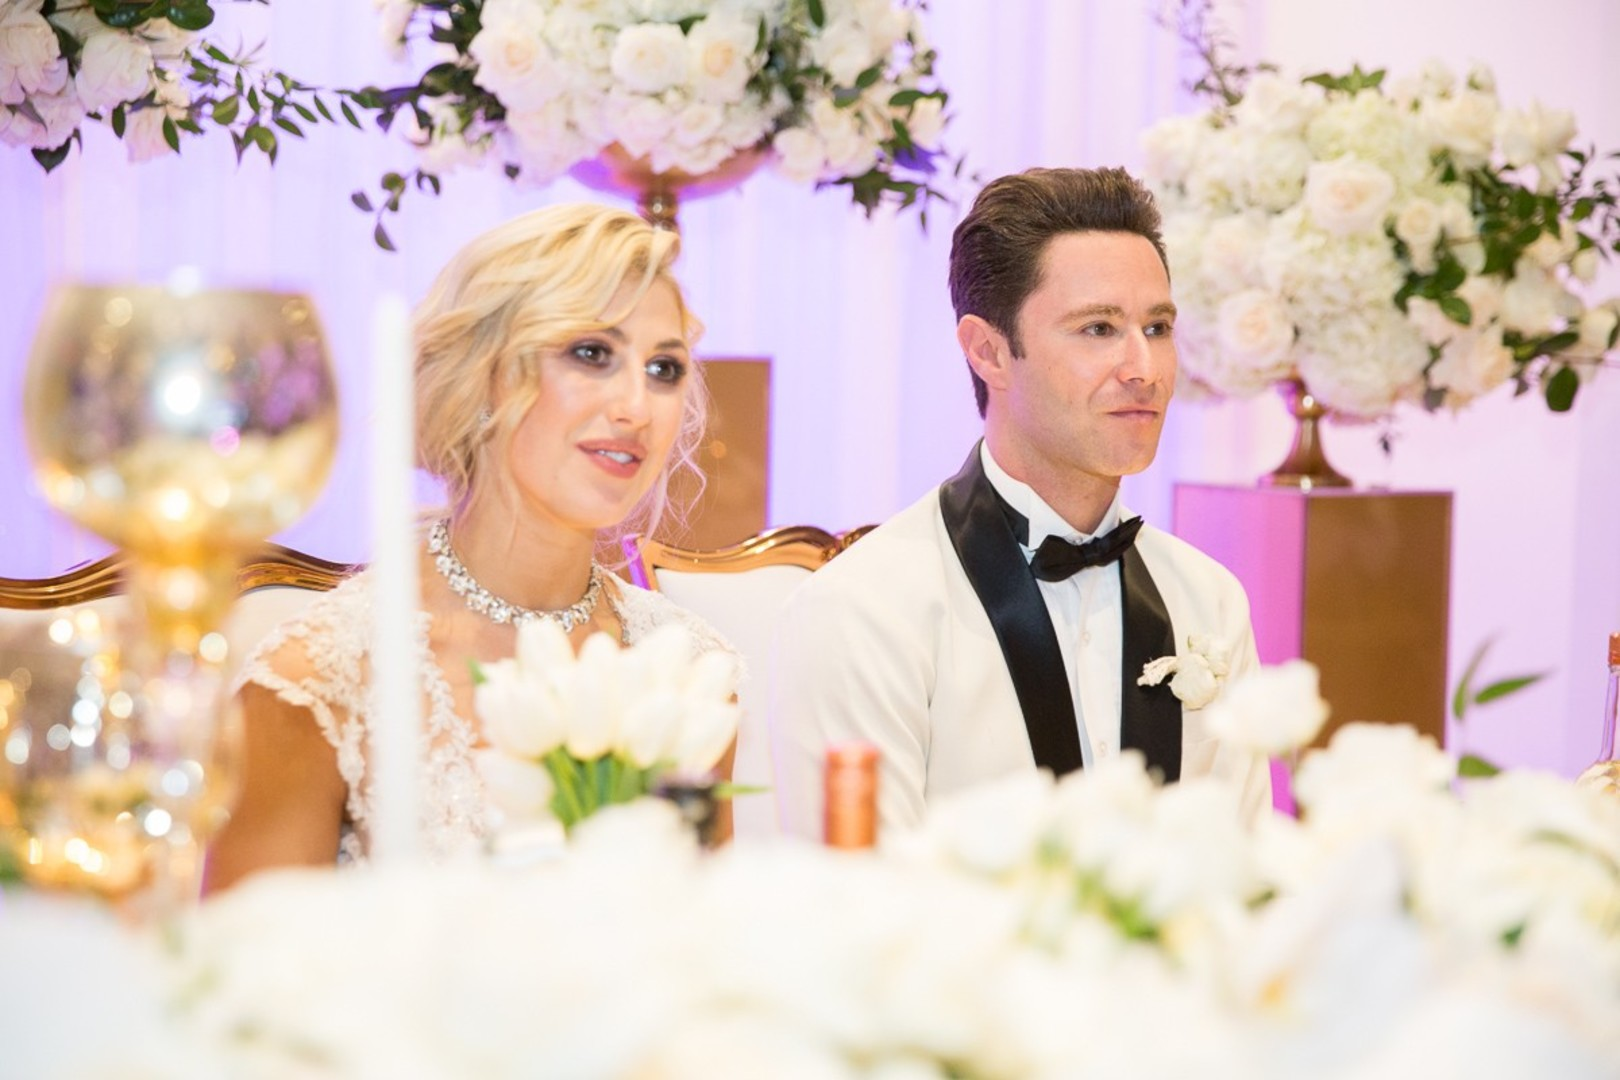 DWTS' Emma Slater and Sasha Farber's Wedding, Bella Blanca Event Center, Emma and Sashas Sweetheart table